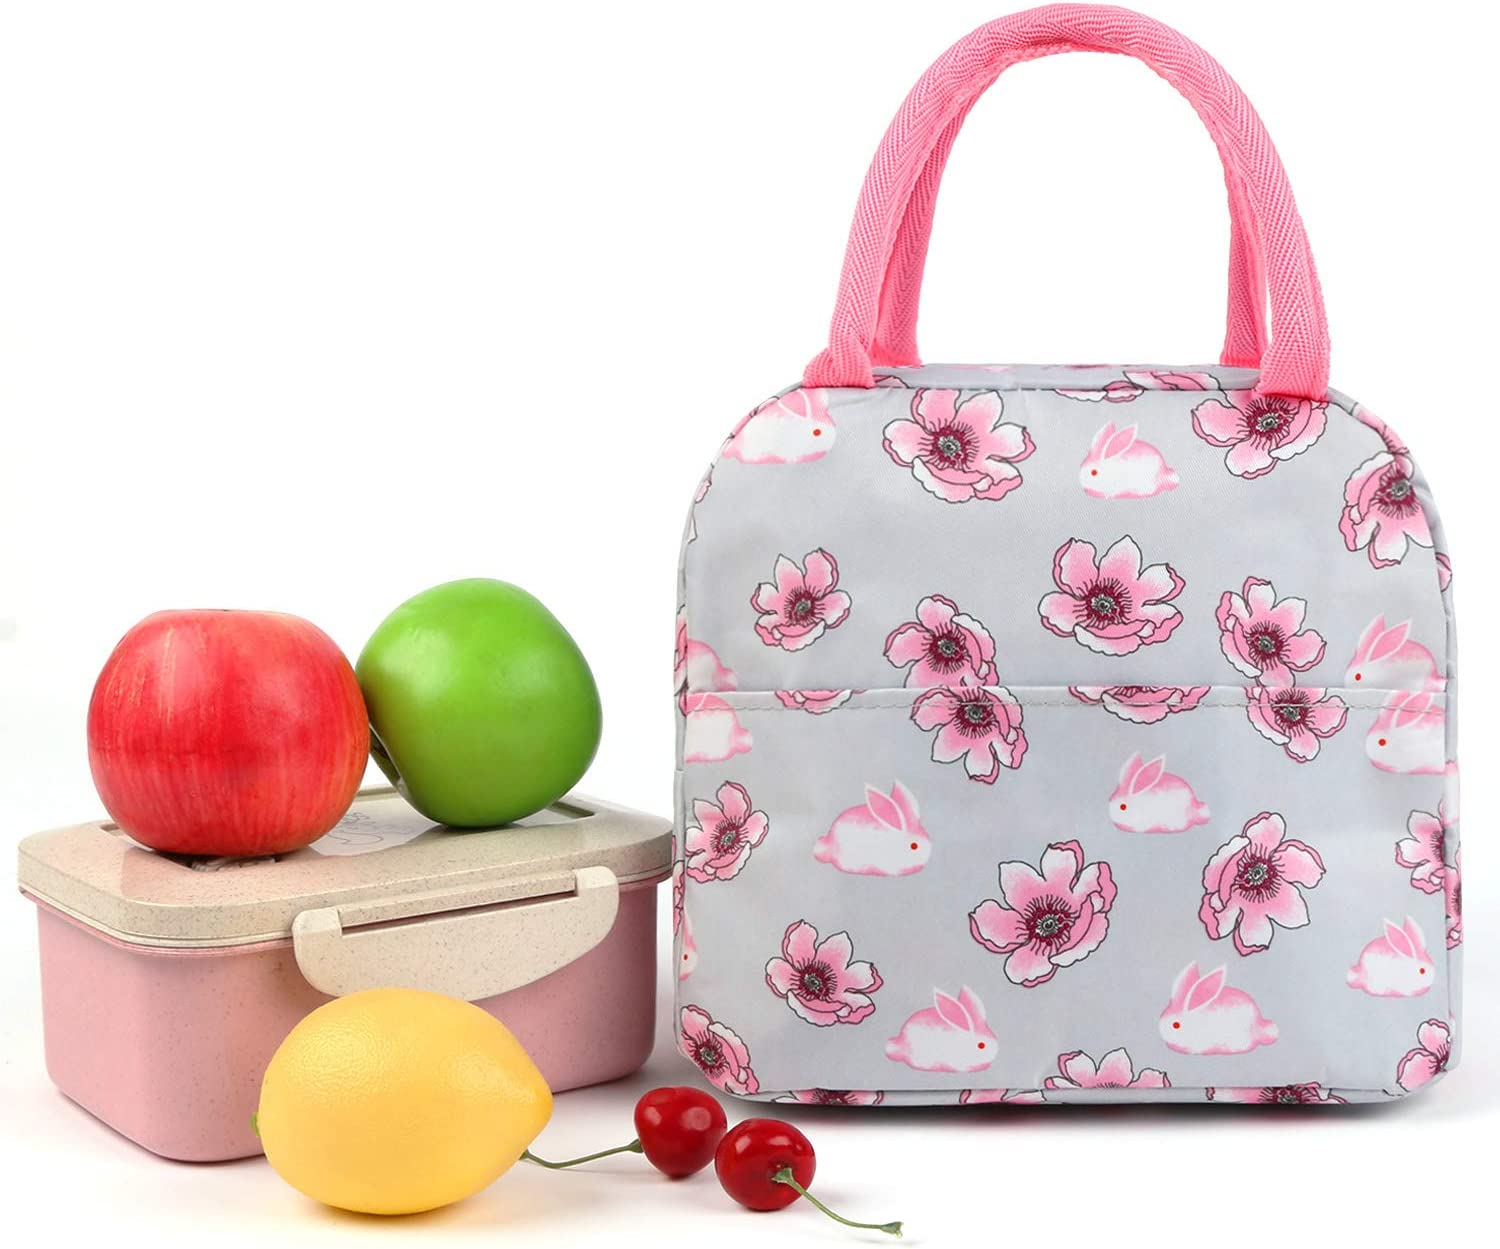 Lunch Bag Lunch Box Tote Bag for Women men Insulated Lunch Container Lunch Organizer,Lunch Holder with Front Pocket Zipper